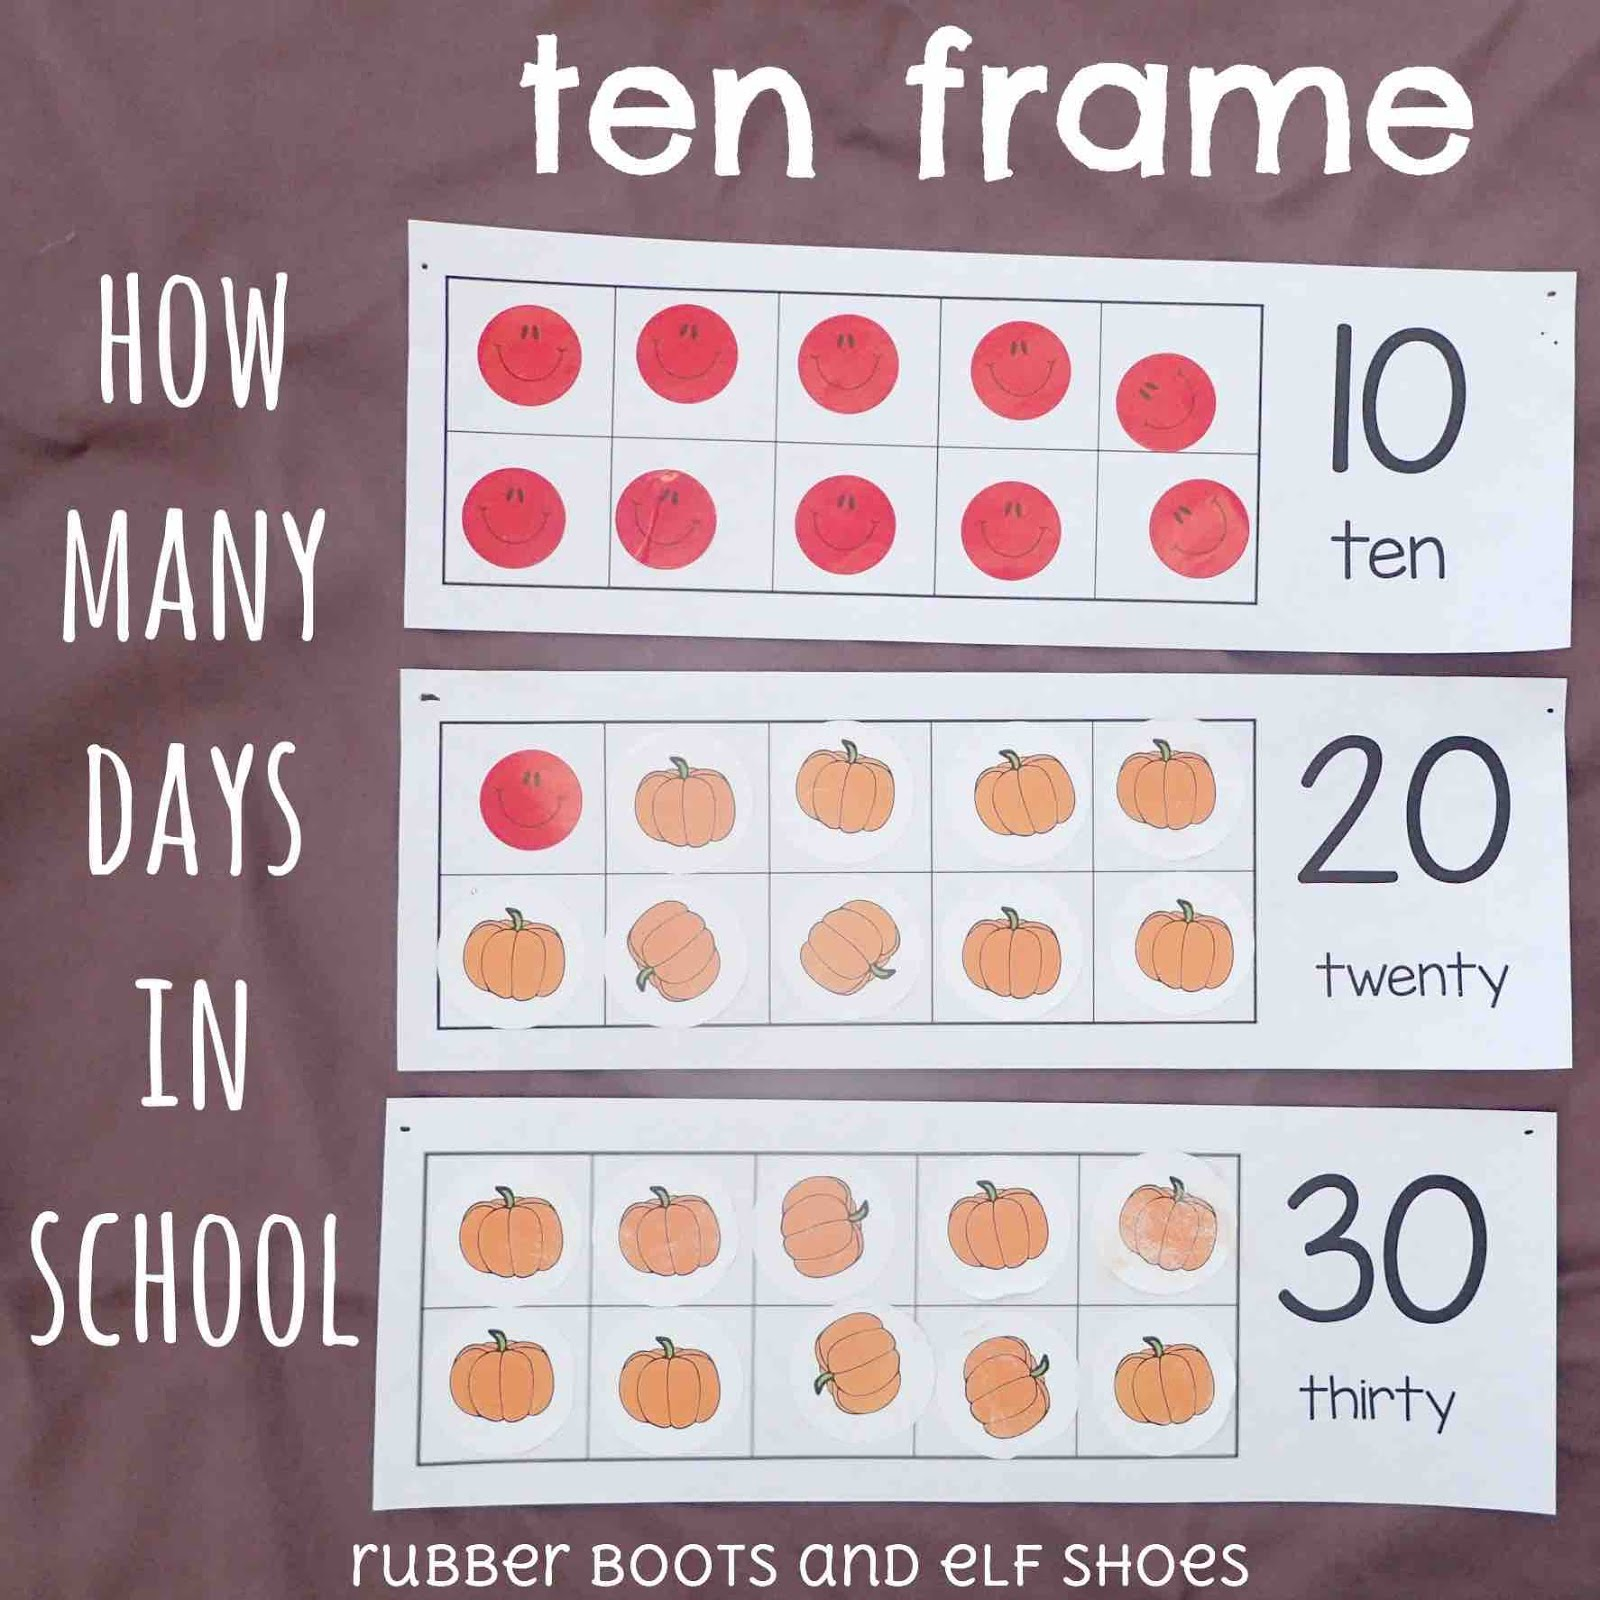 Counting School Days On A Ten Frame